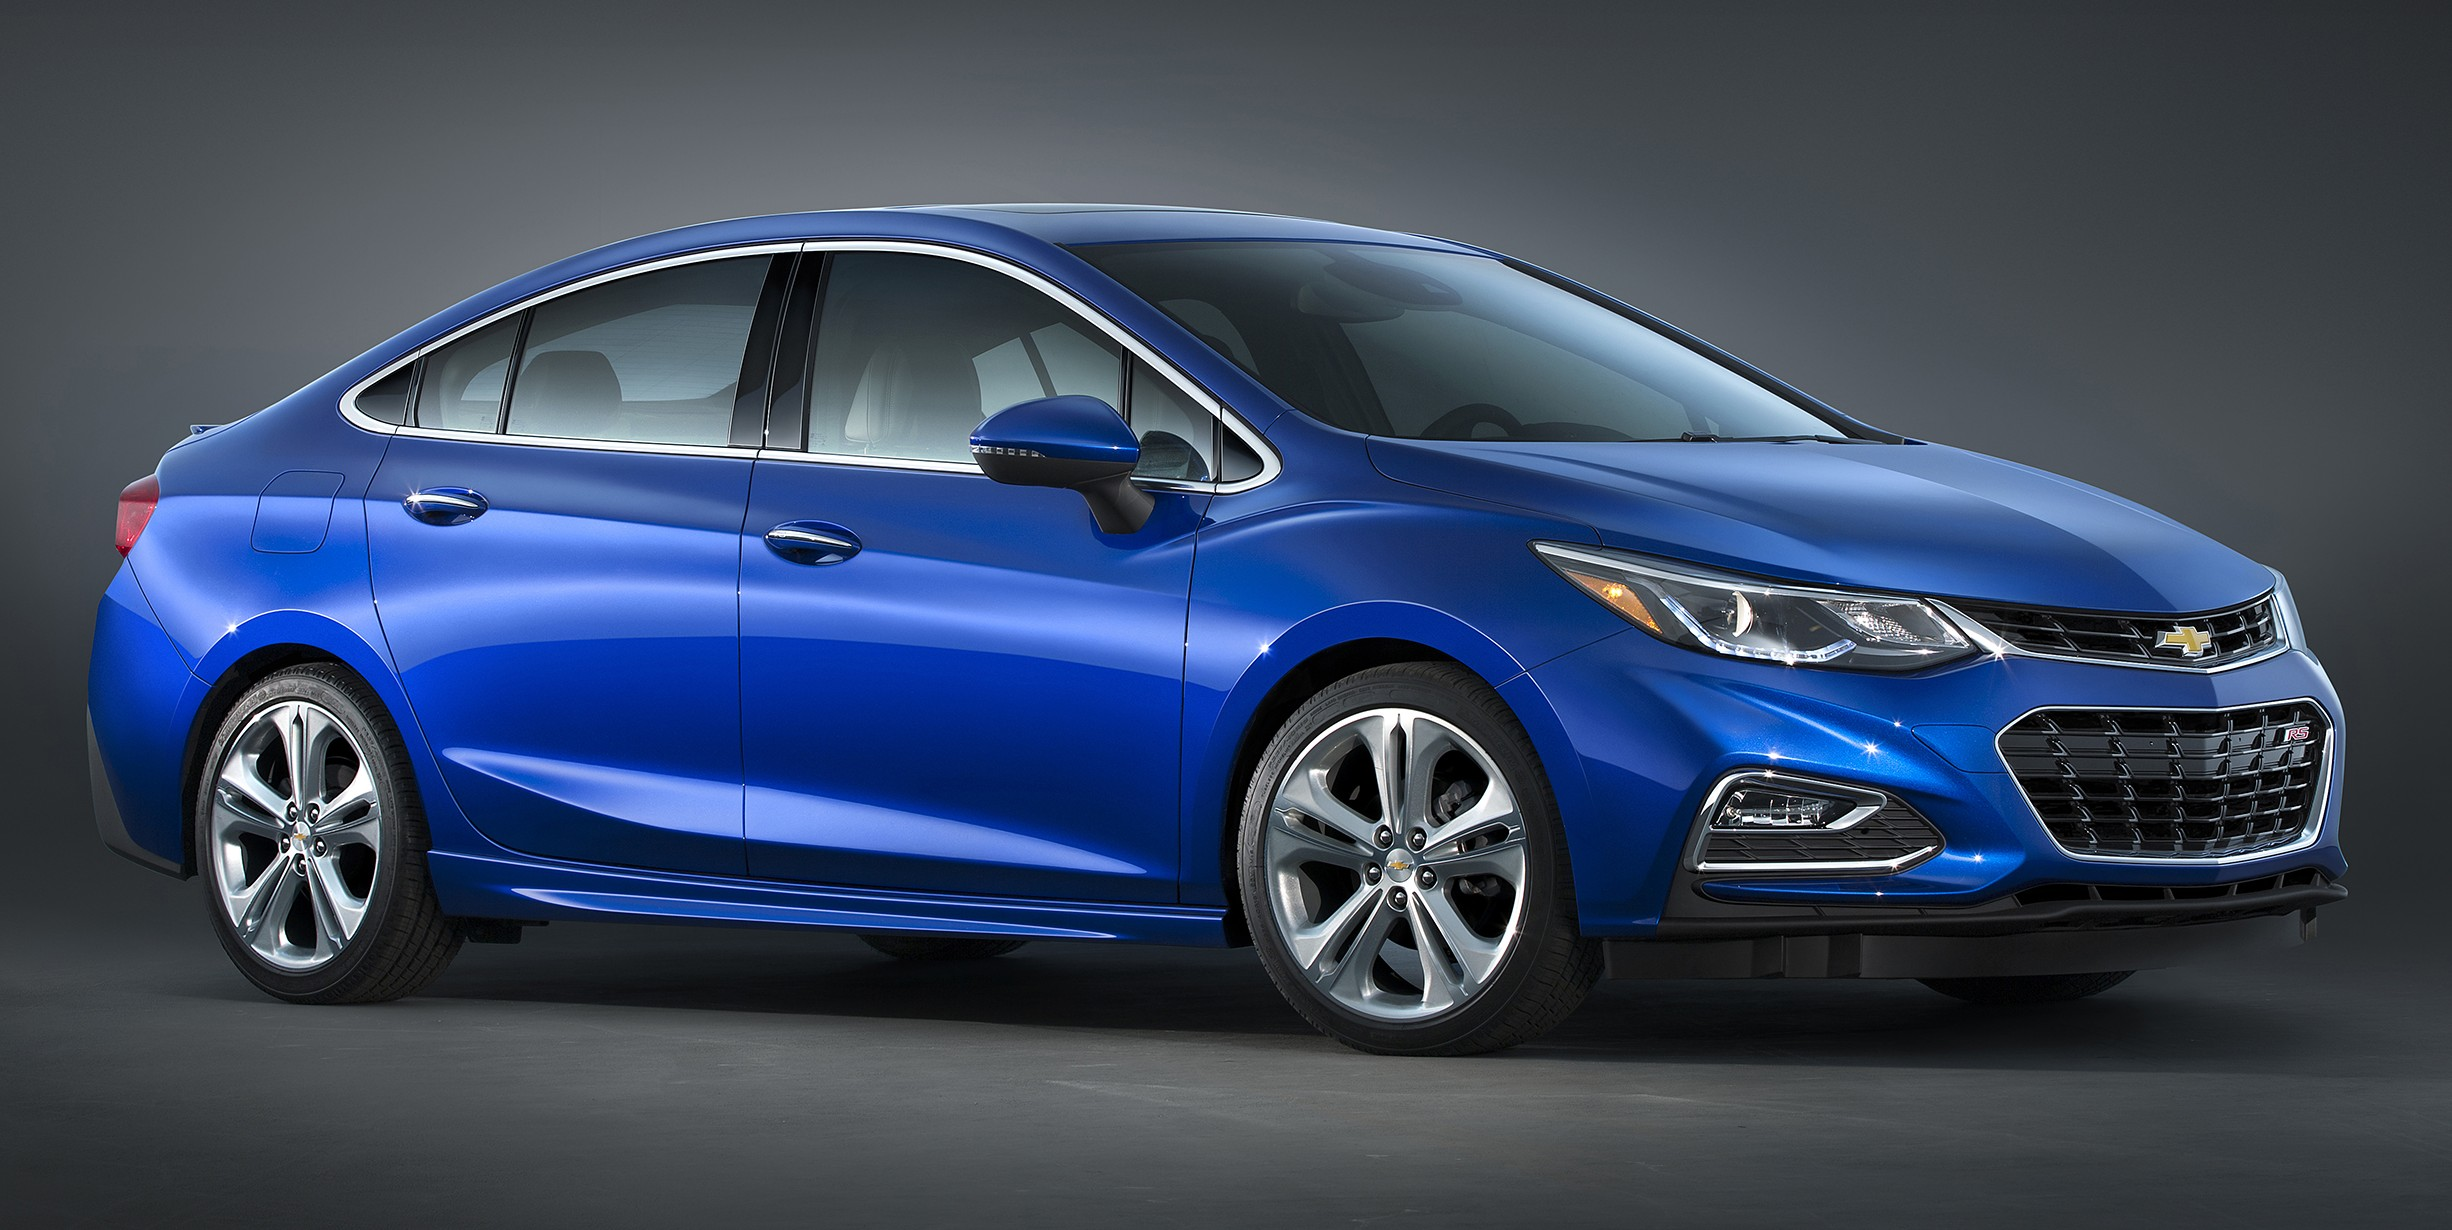 2016 Chevrolet Cruze unveiled for the global market Image 354118